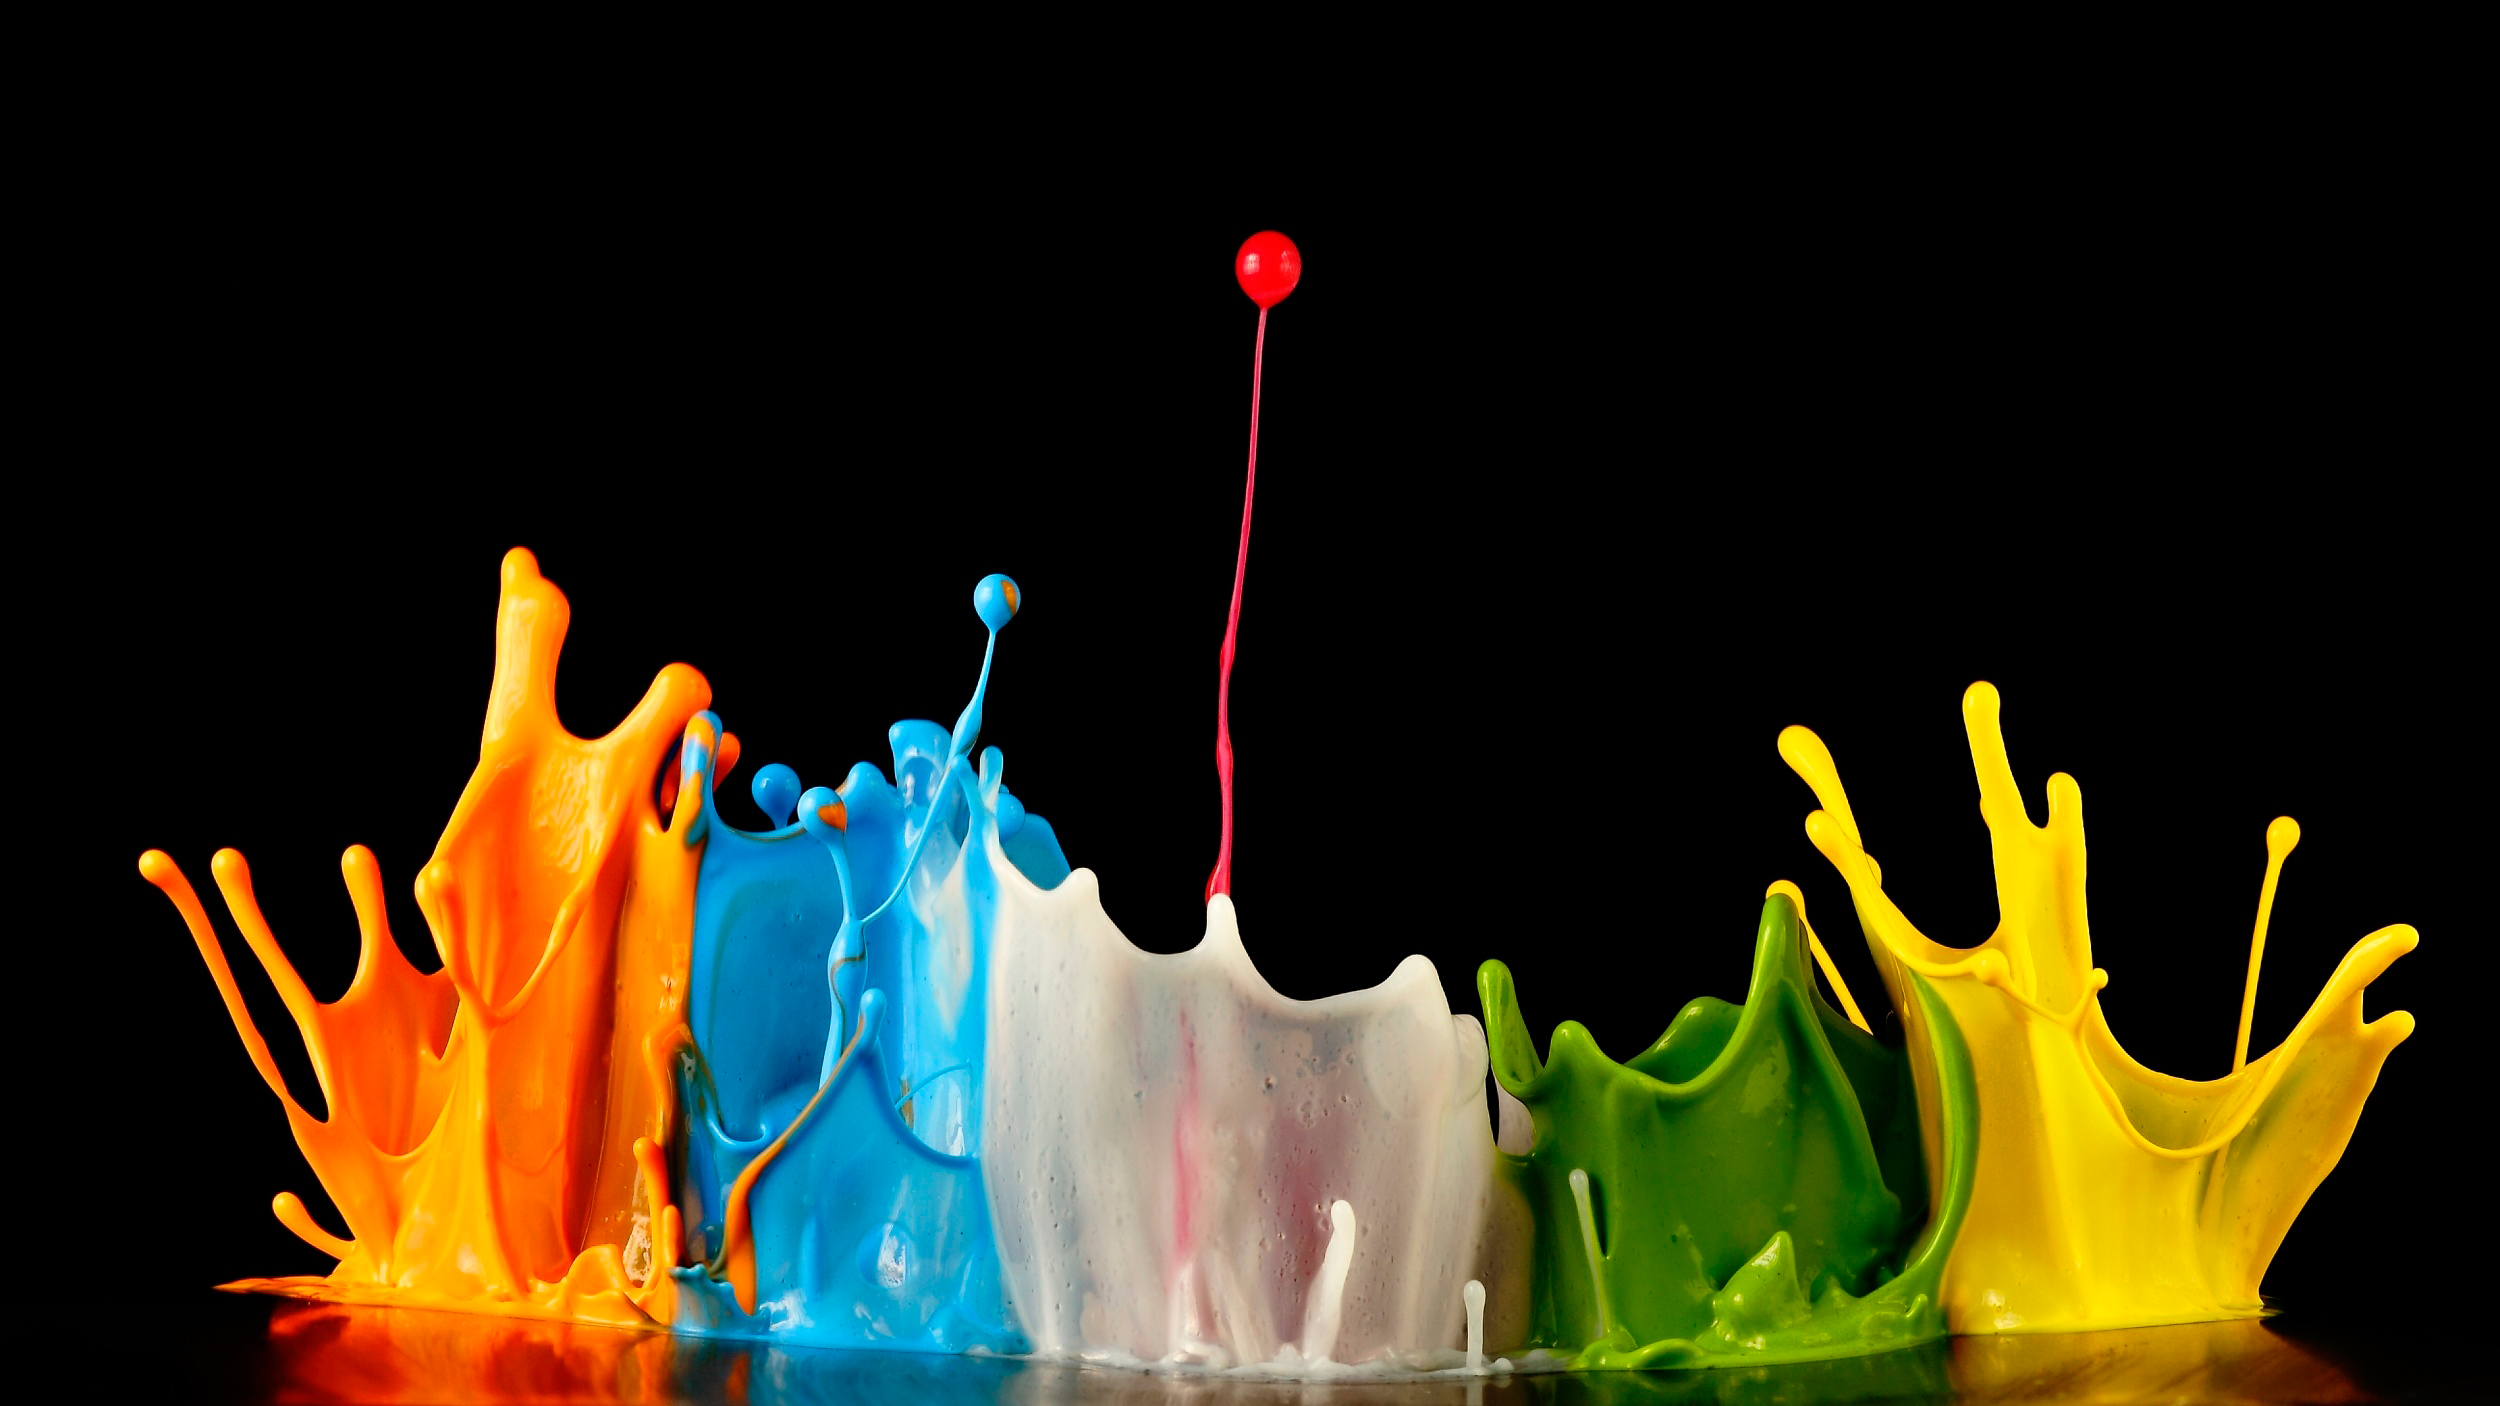 colors-paint-splash-orange-blue-green-yellow-white-drop-black-background.jpg